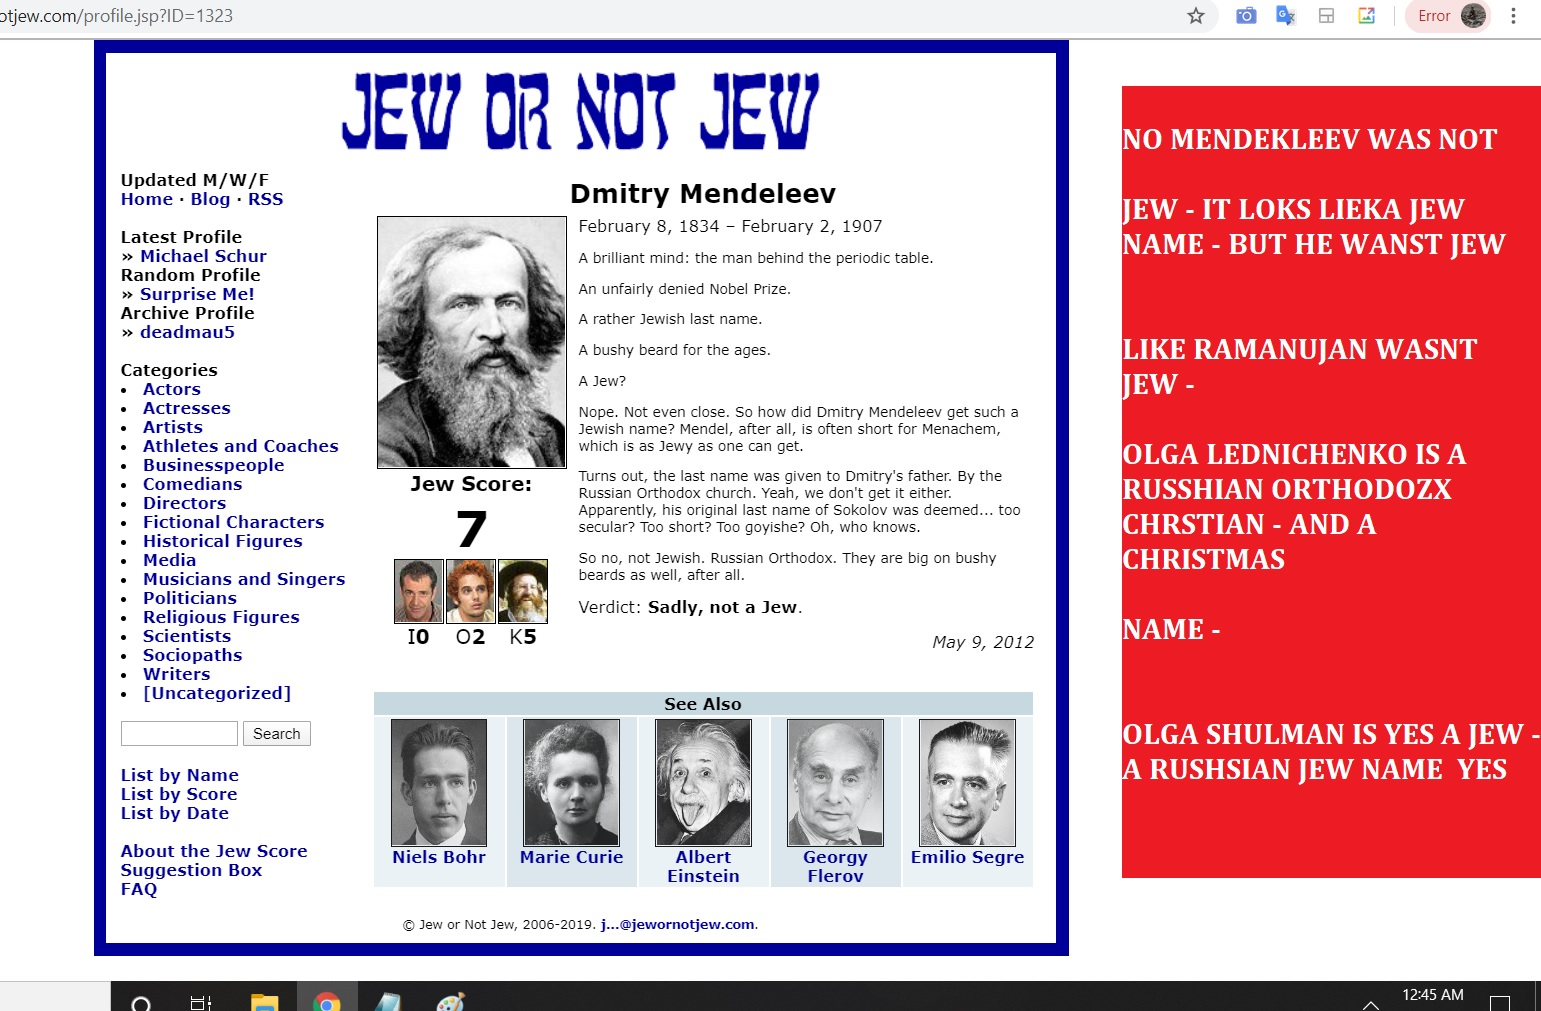 NO DMITRY MENDELEEV WAS NOT JEW, OLGA LEDNCIHENKO IS A CHIRSTIMAS, RUSHSIAN ORTHODOX CHRISTIAN AND CHRSTMAS NAME - ONLY SHULMAN IS JEW WORD OR JEW NAME